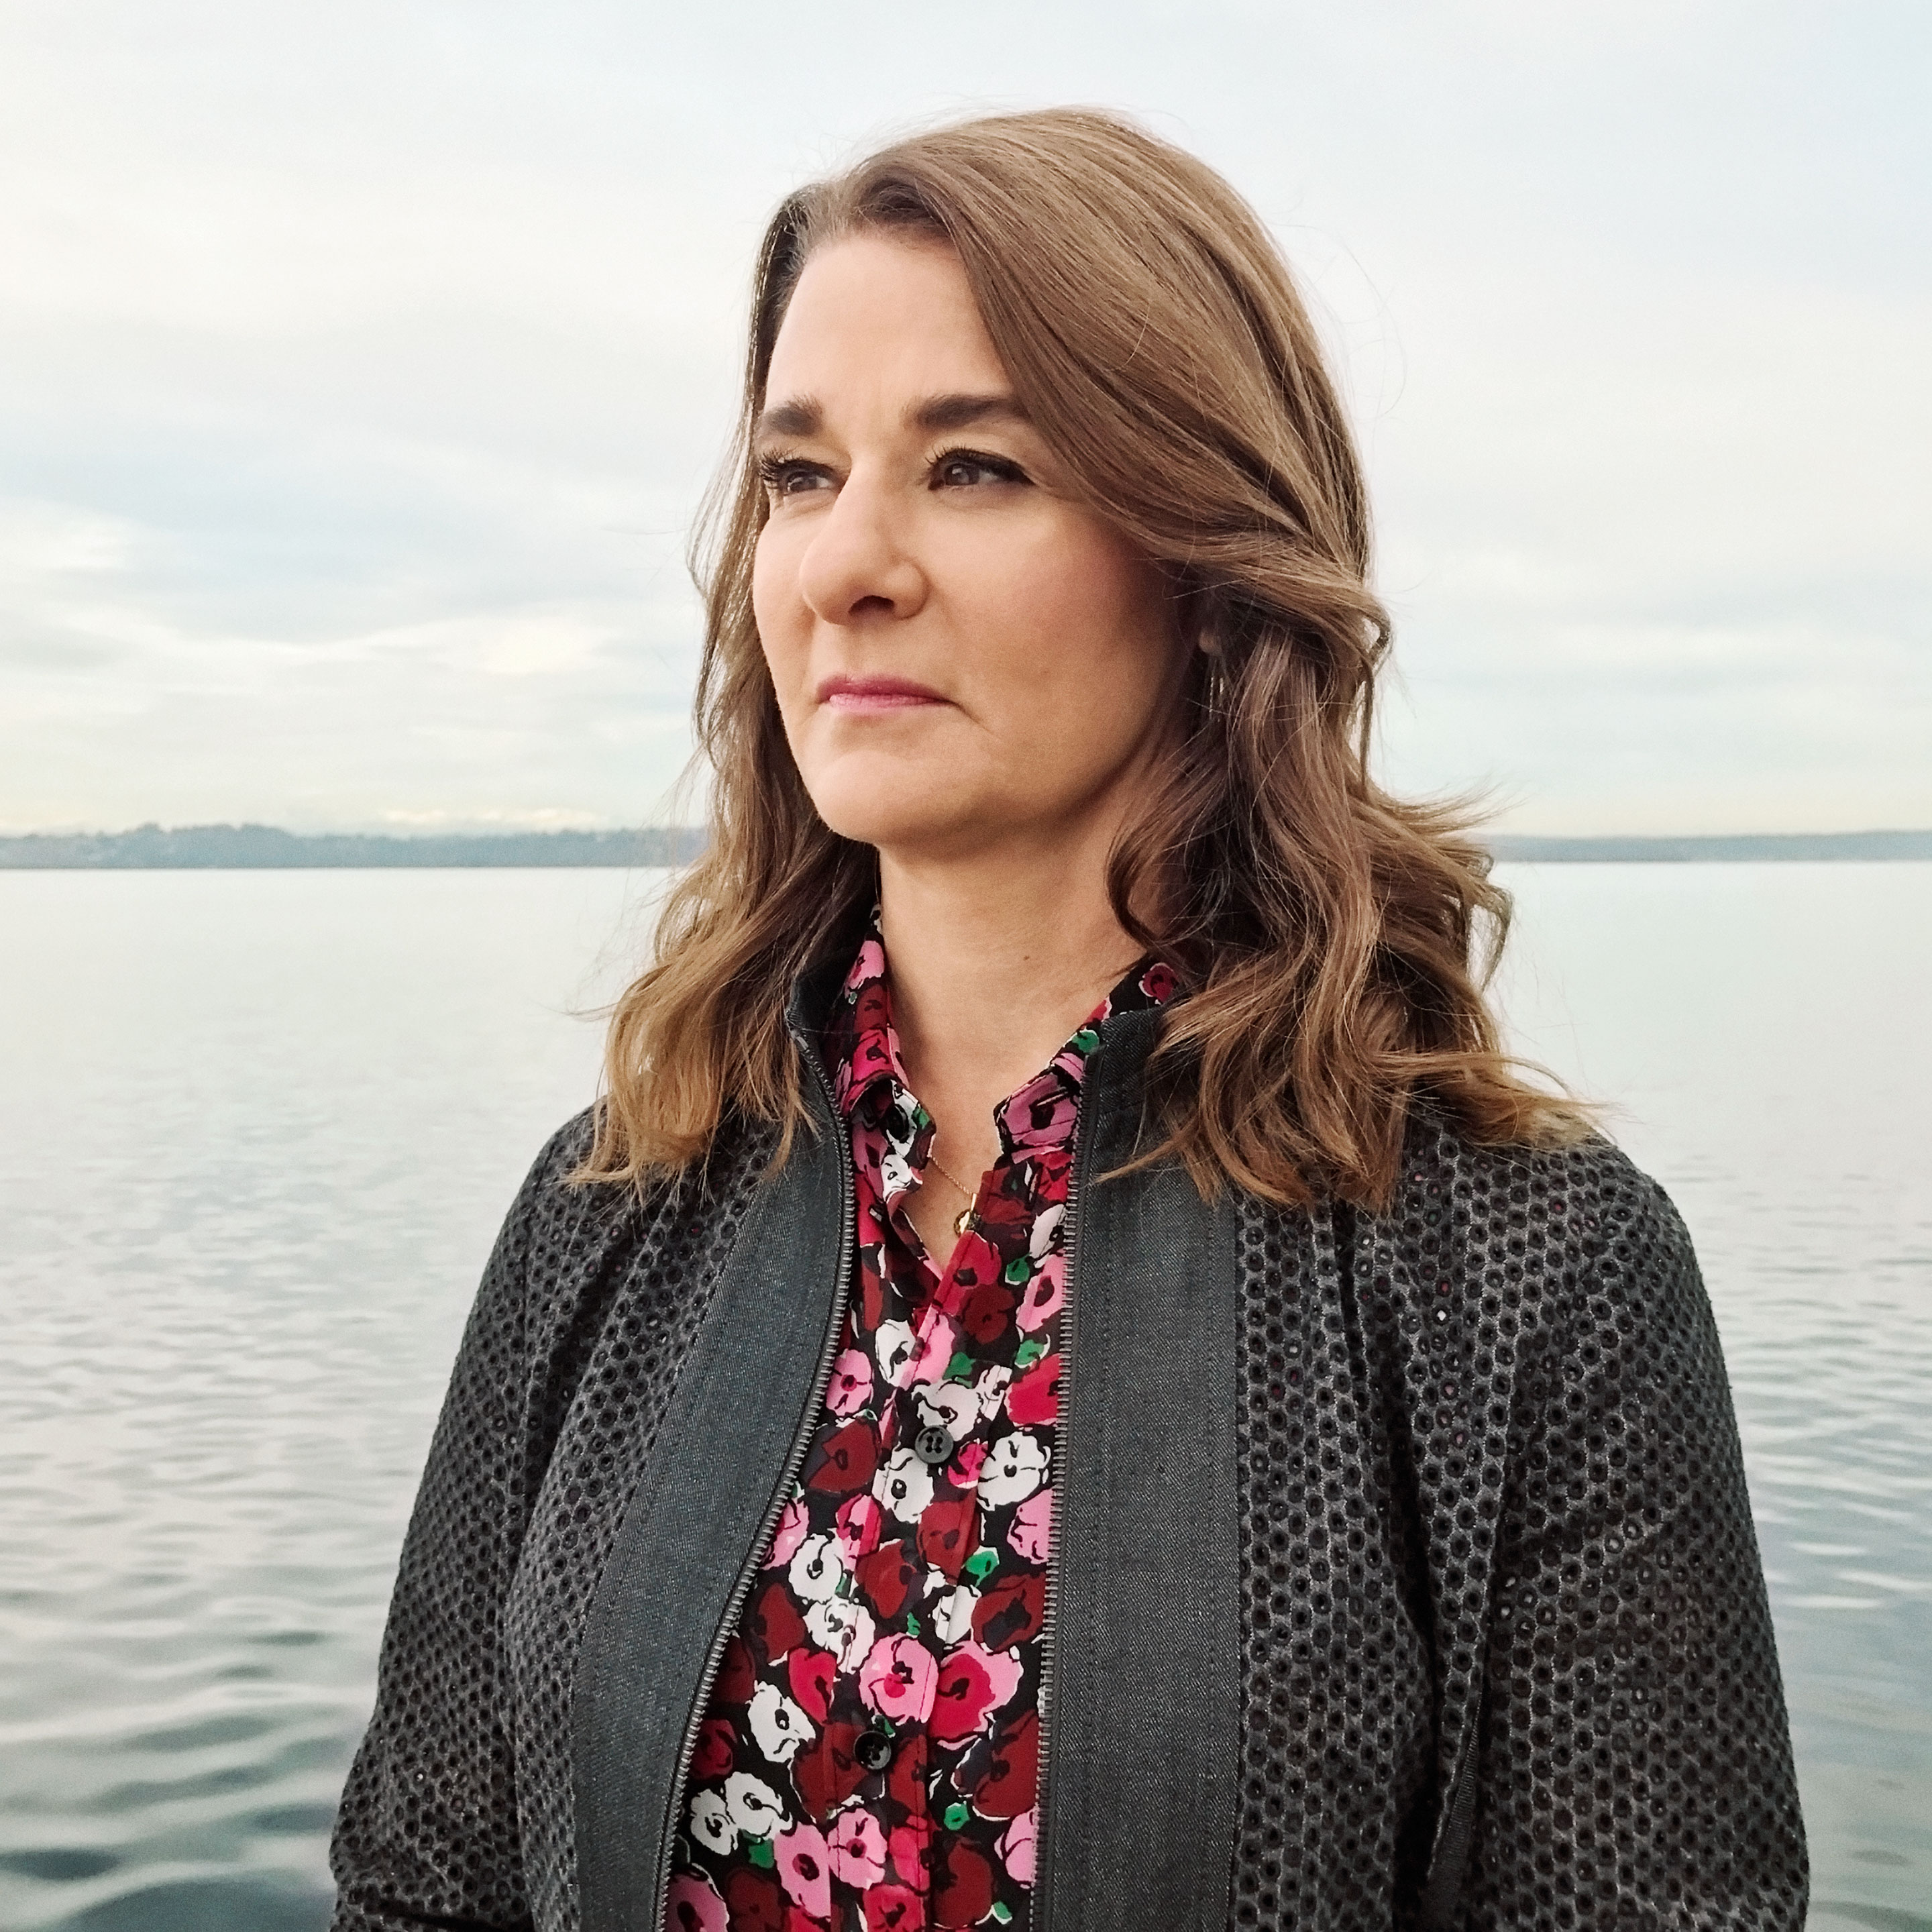 Philanthropist Melinda Gates, who invested in Aspect's second fund, says it's time for LPs to step up and demand change.